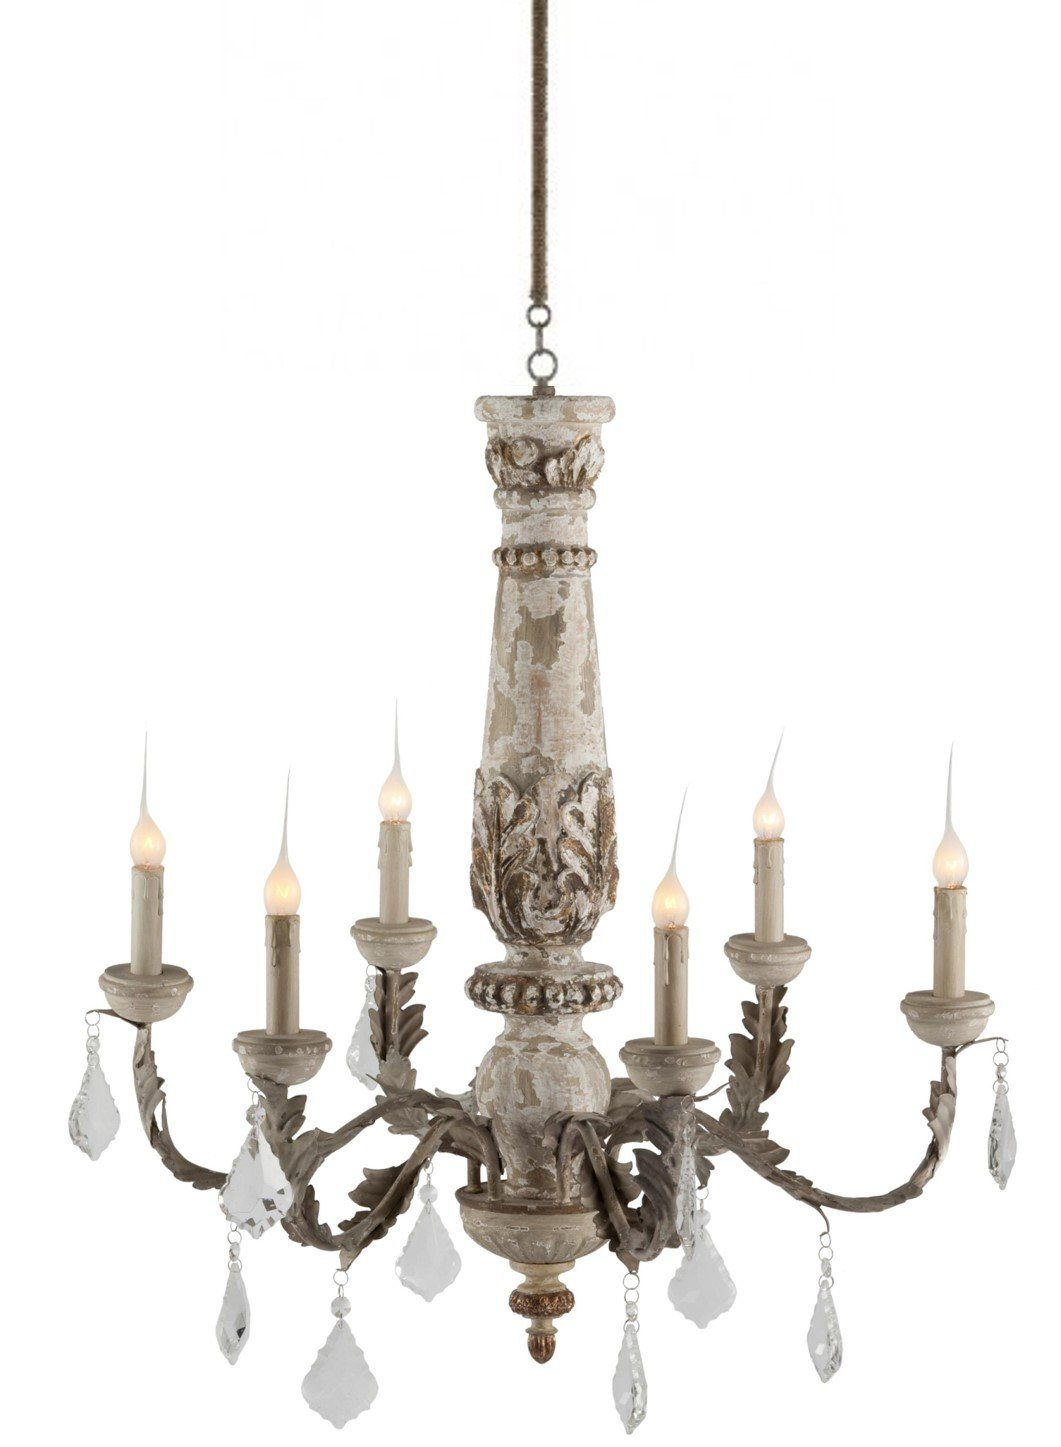 Baudin French Country Rustic Crystal Gray 6 Light Chandelier See This Great French Country Chandelier Country Bedroom Furniture French Country Style Bedroom